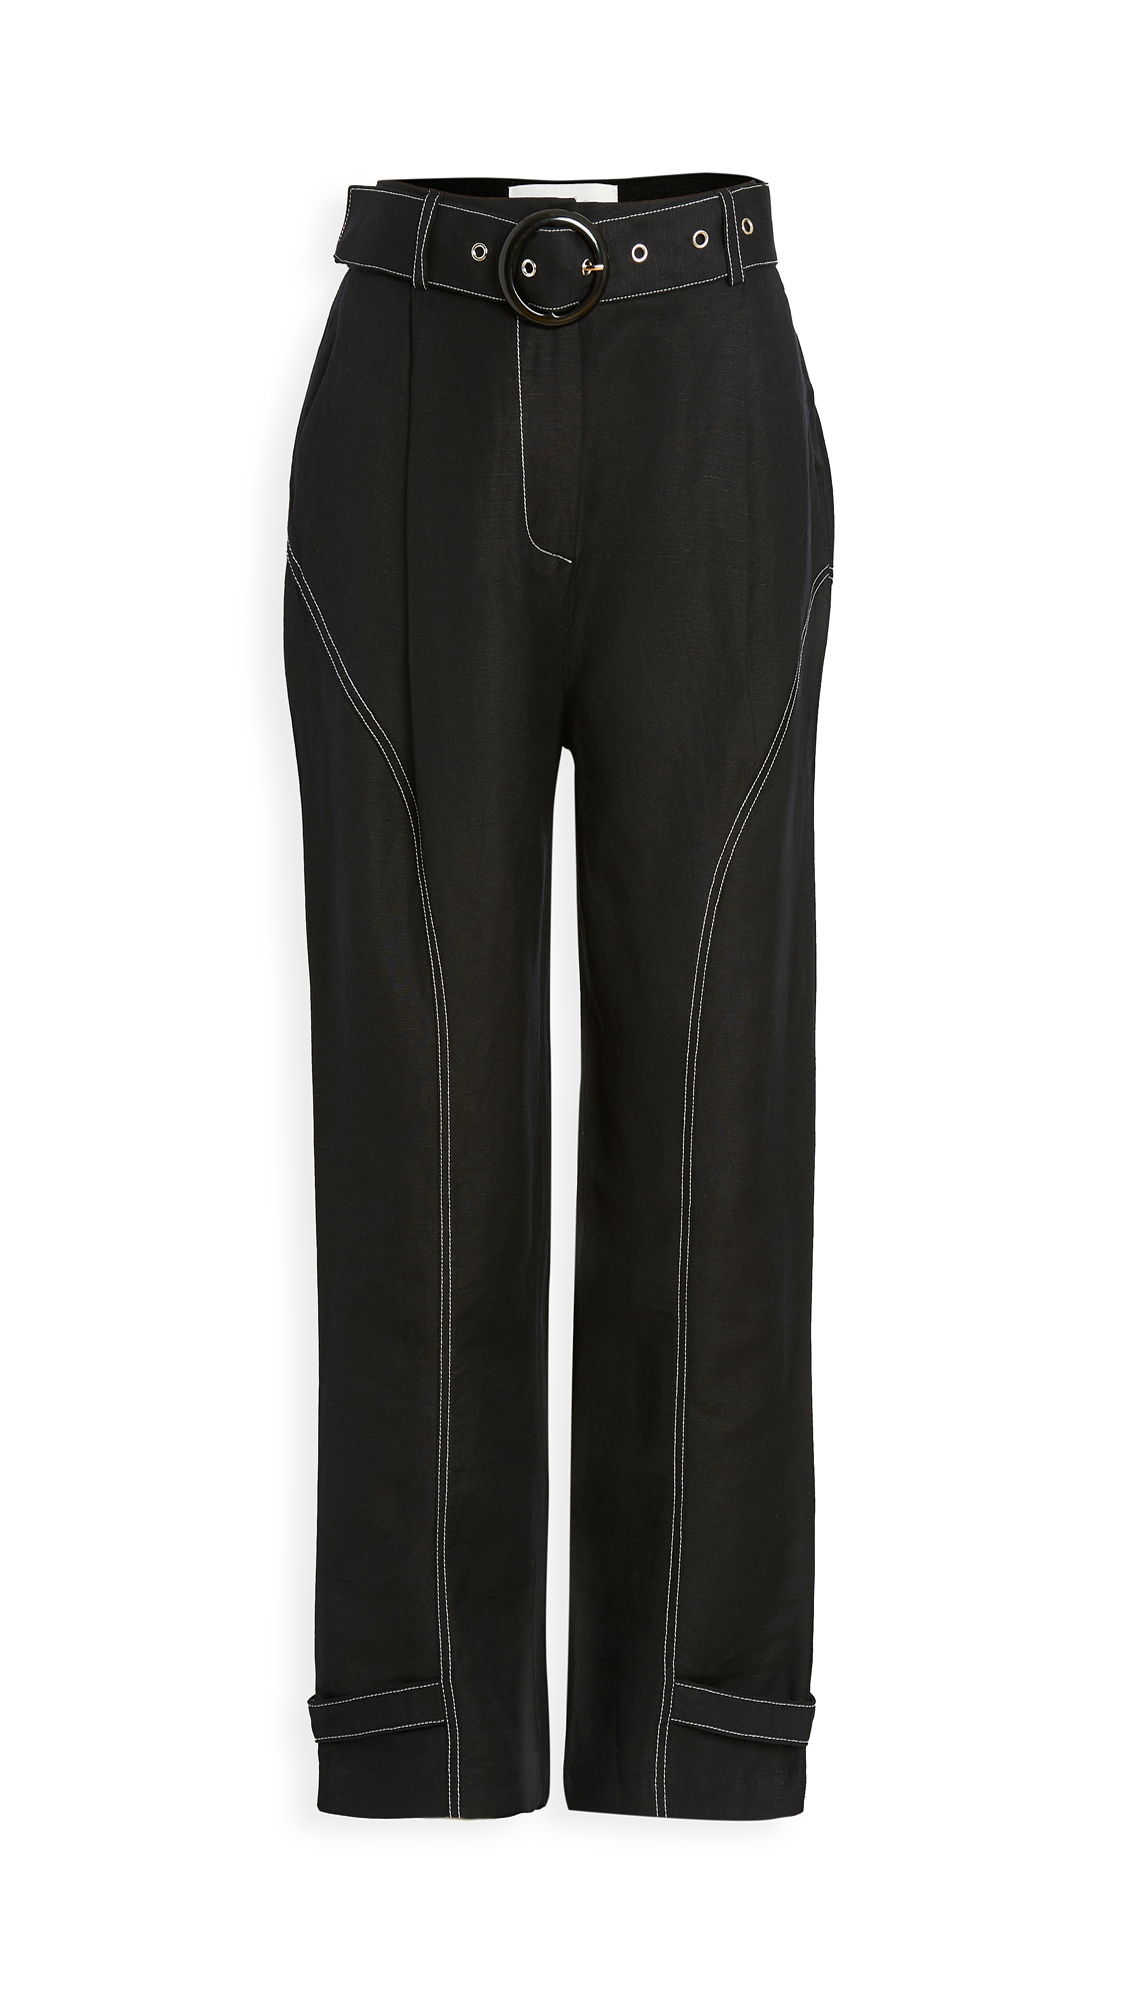 Steele Eloisa Pants